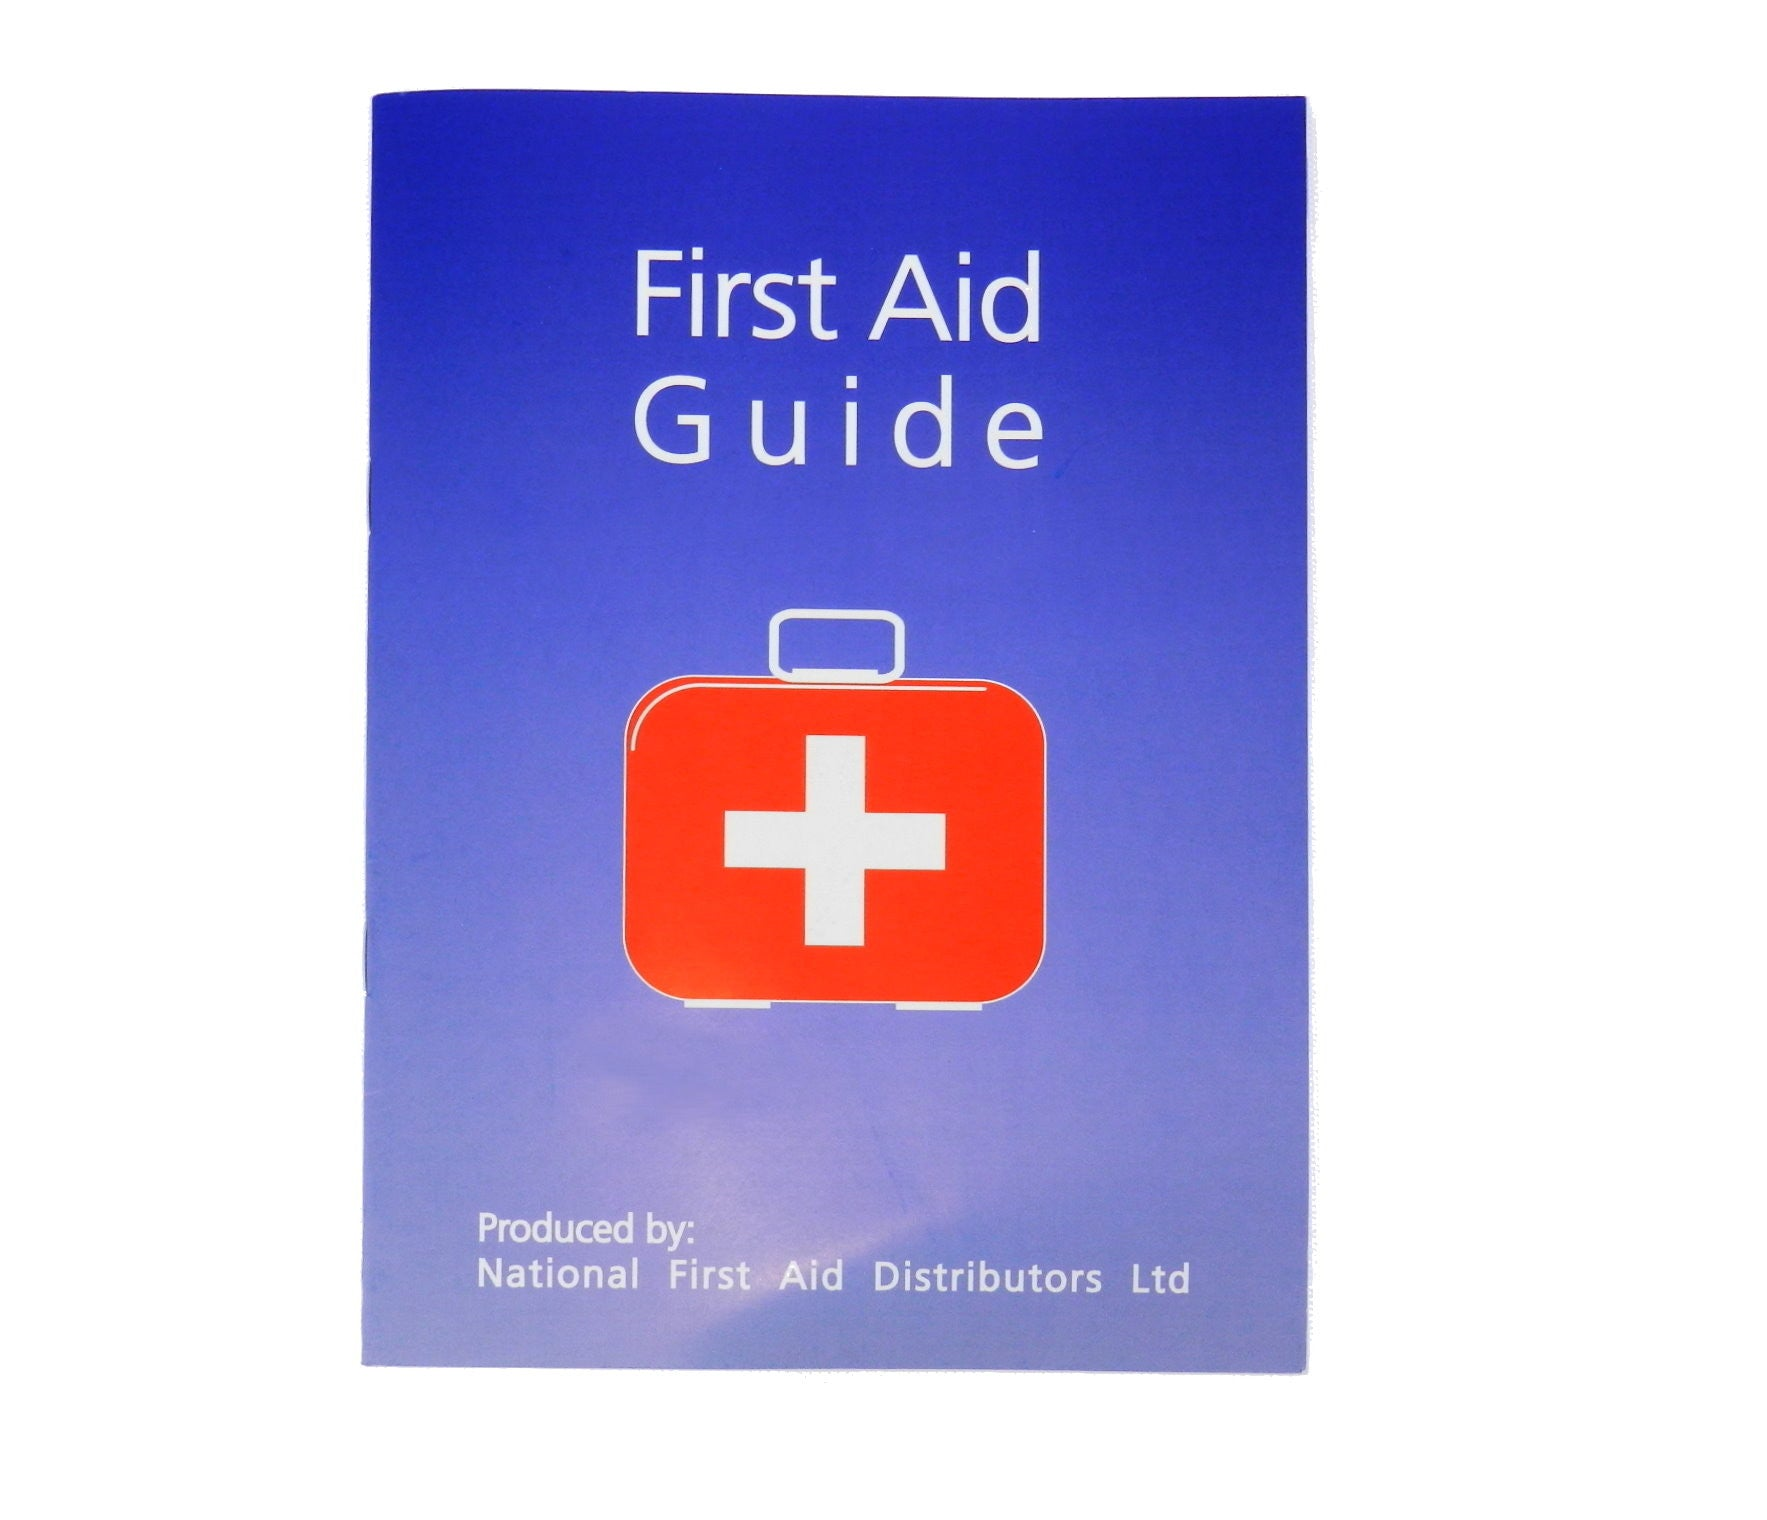 Image of First Aid Guide